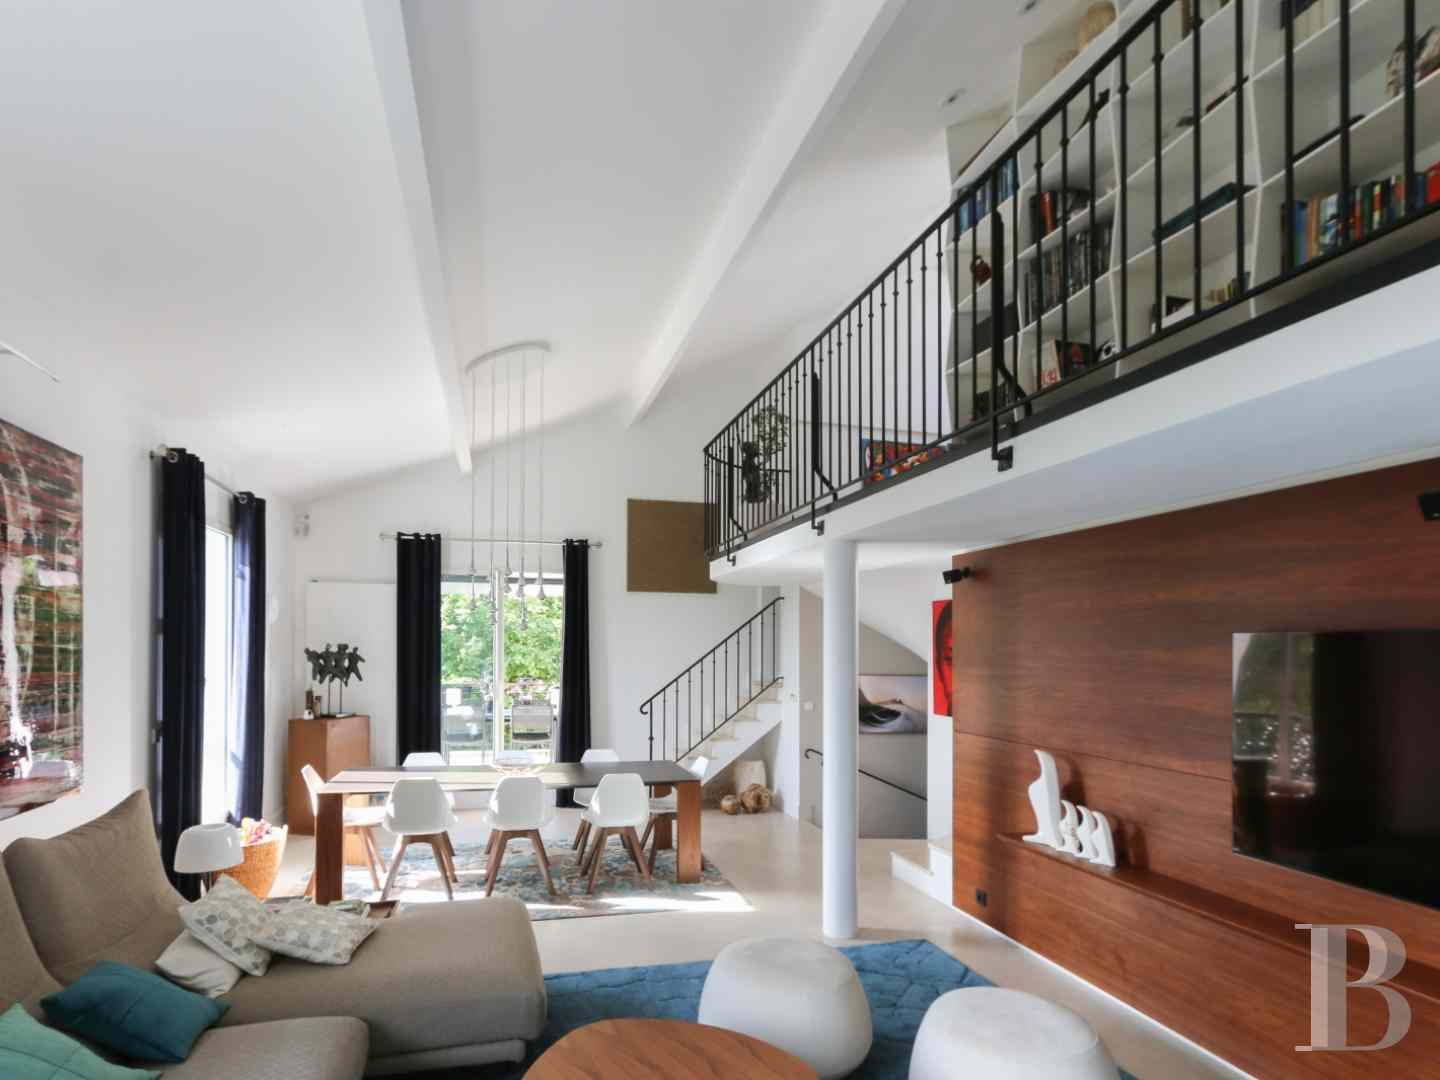 property for sale France paris residences 20th - 4 zoom